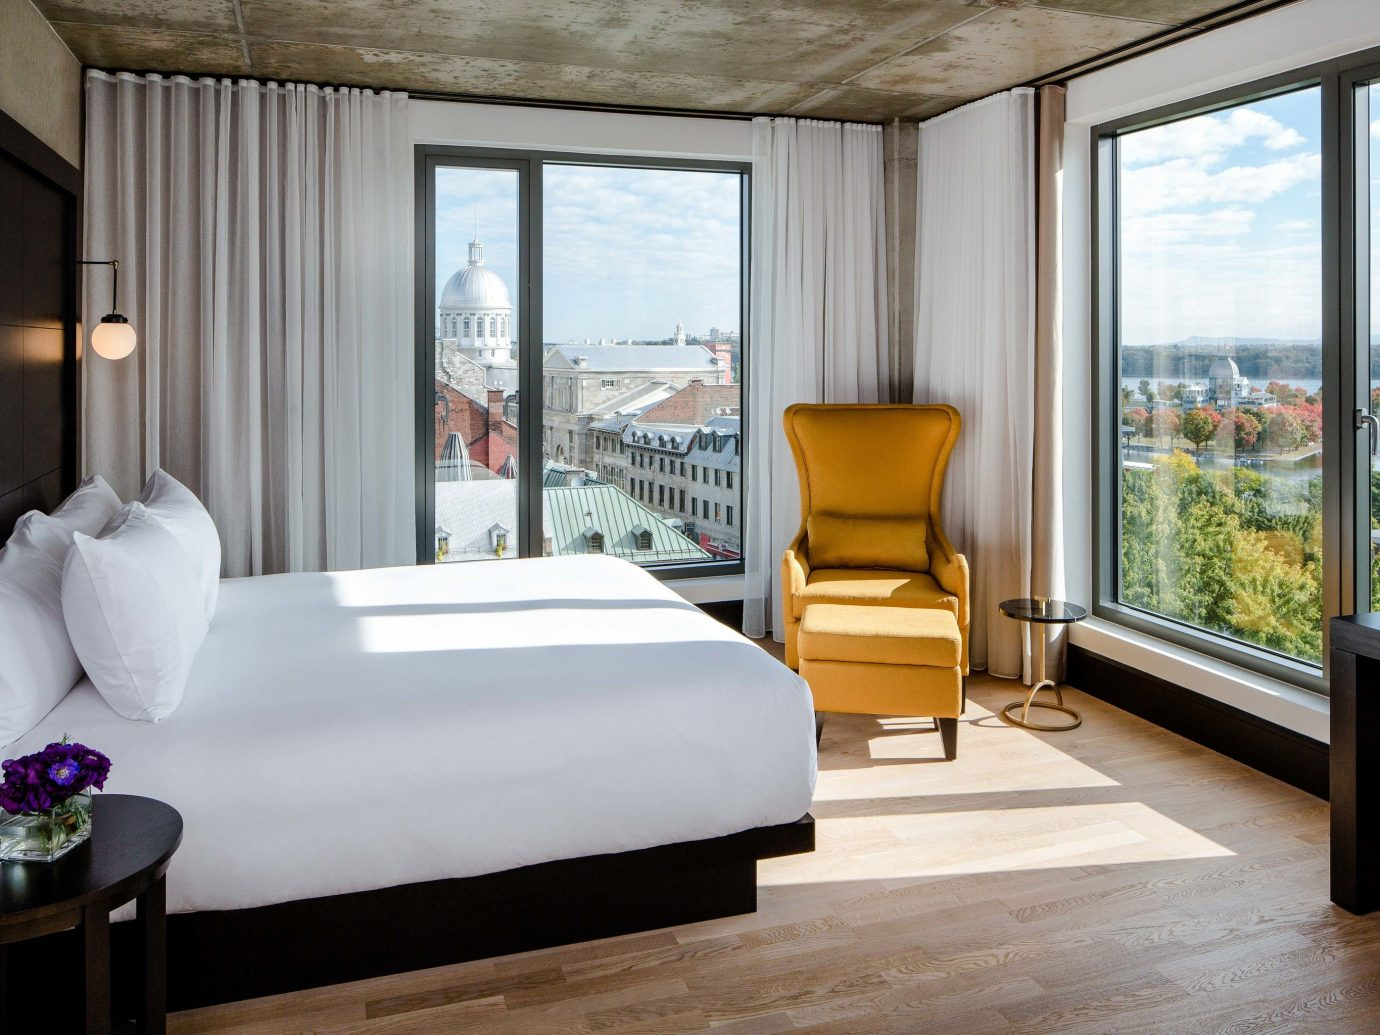 Canada Hotels Montreal Trip Ideas indoor window floor room bed wall sofa hotel Living interior design Suite Architecture furniture Bedroom ceiling bed frame real estate window covering penthouse apartment window treatment nice interior designer mattress estate decorated flat